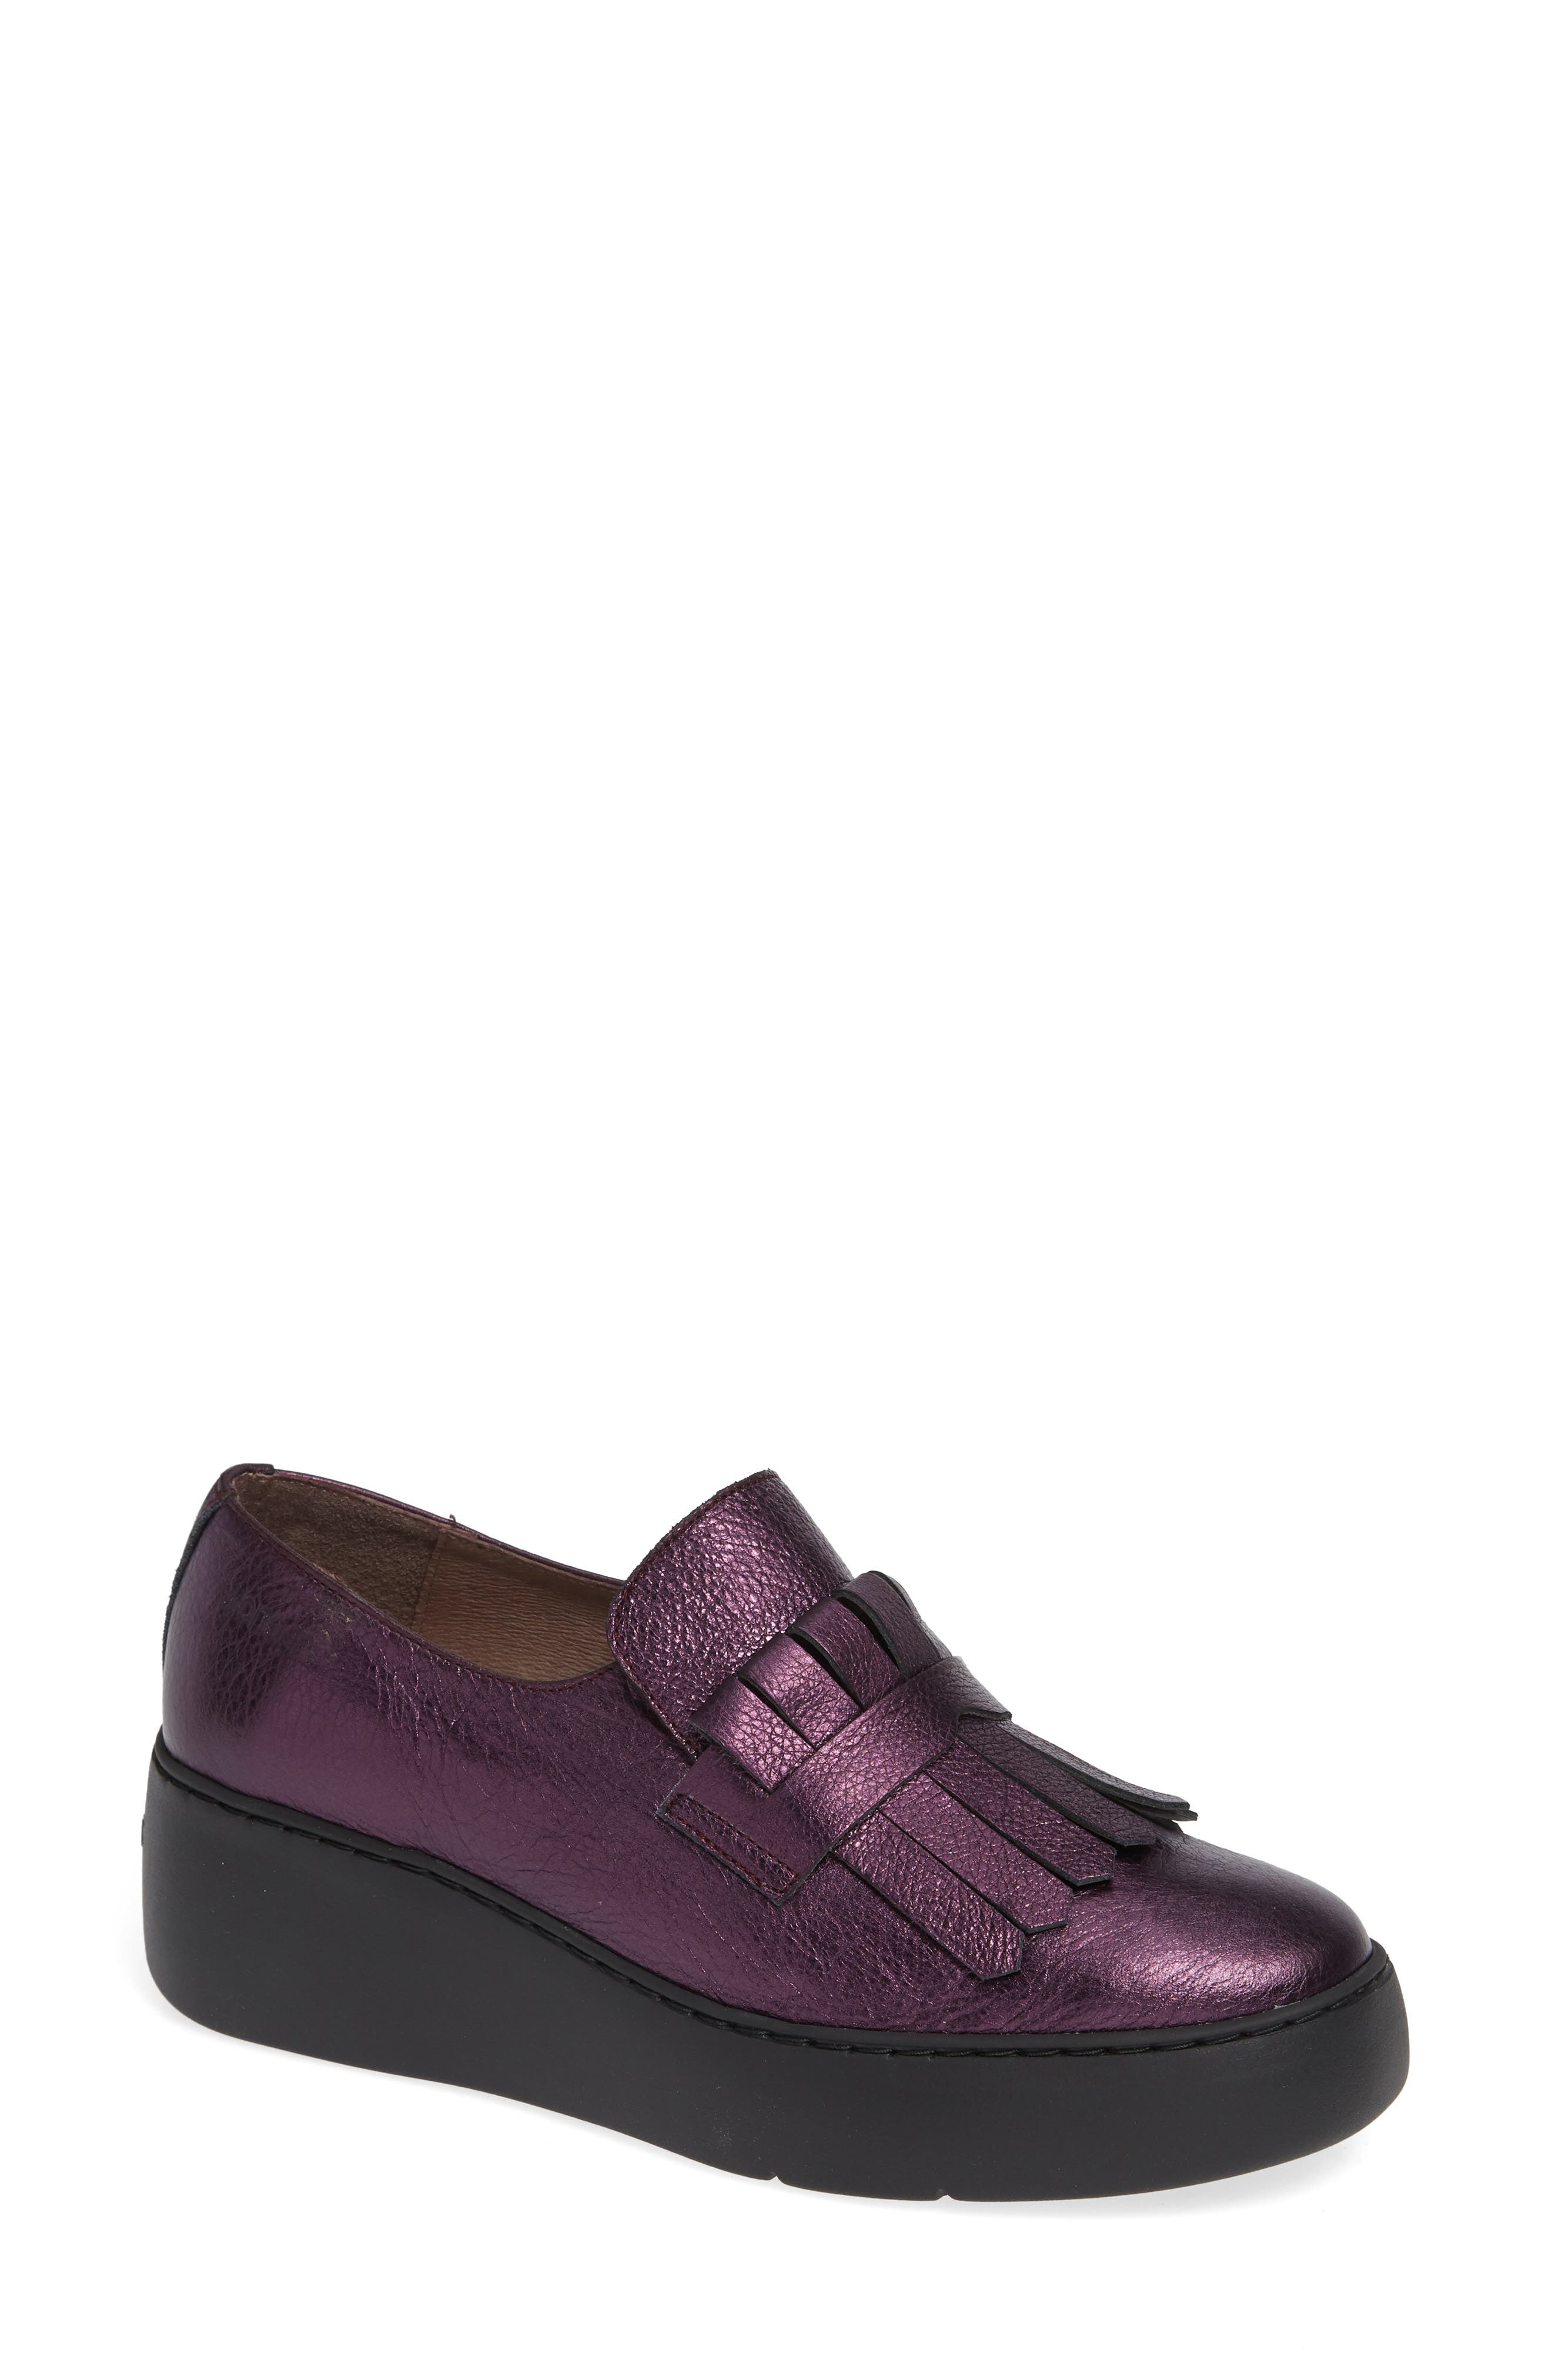 Wonders Kiltie Platform Loafer - Purple